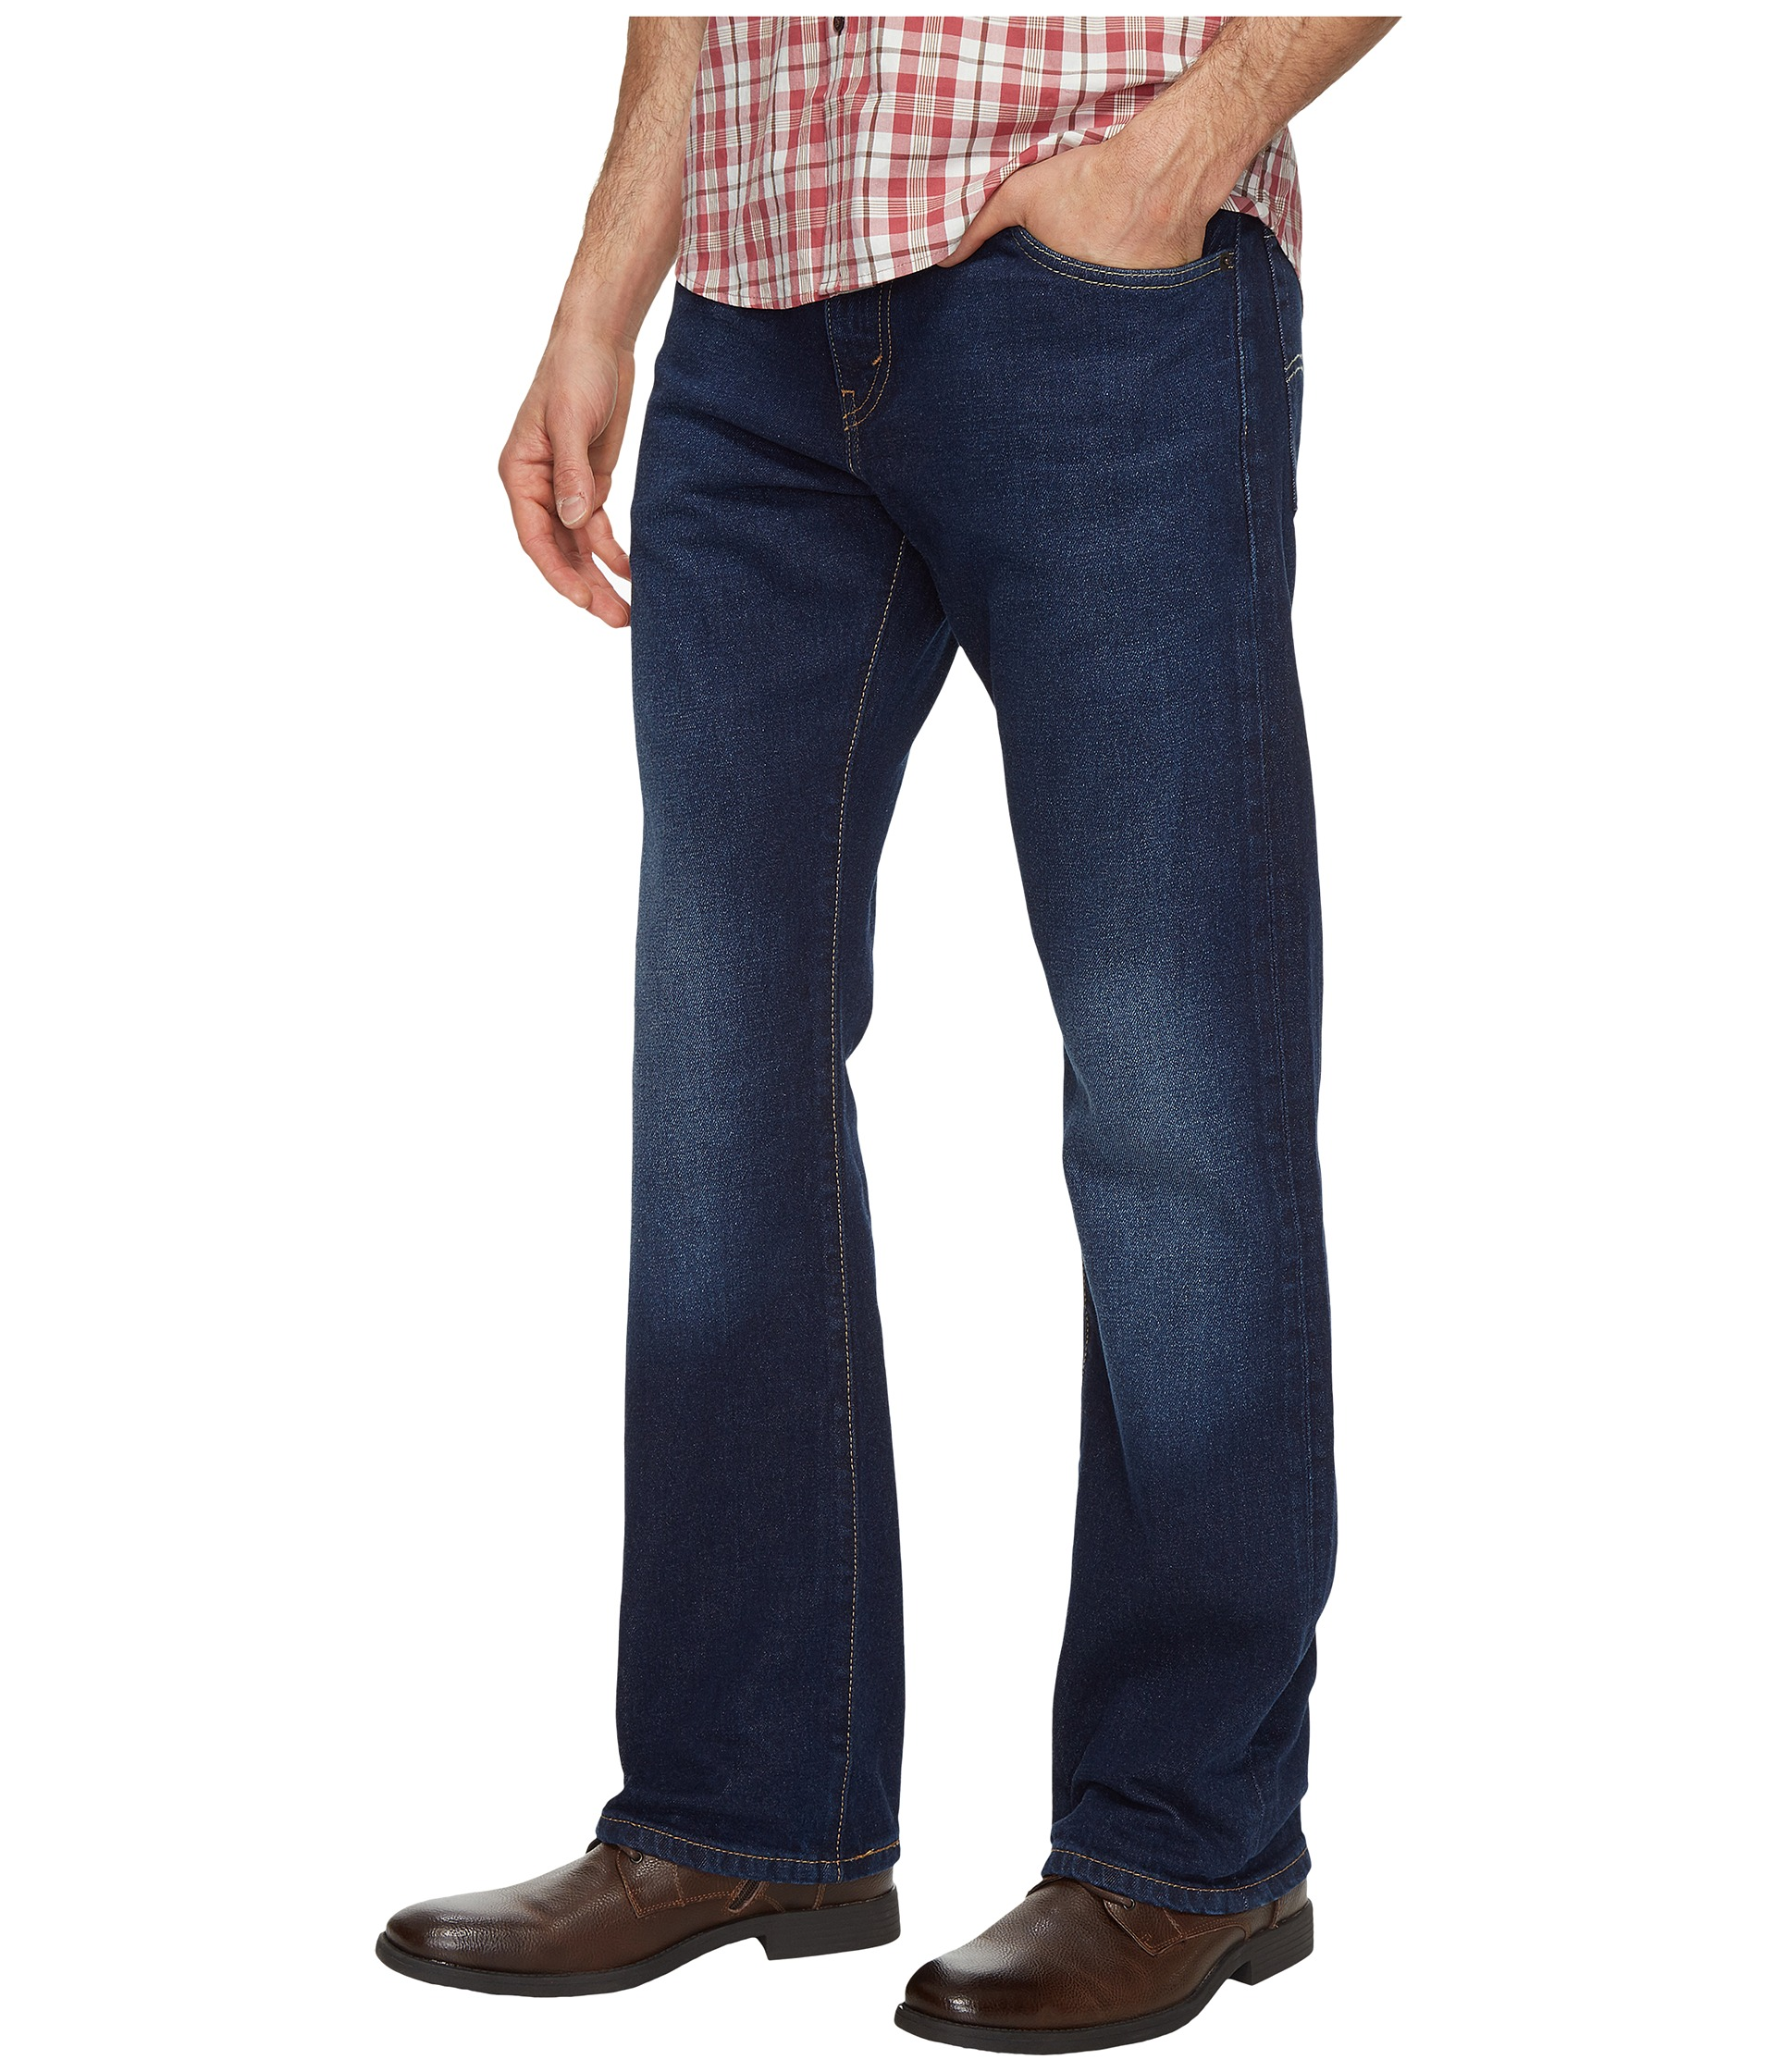 Classic vintage Levi's jeans with a traditional 5-pocket design. Cut in a fitted silhouette with a classic boot leg you can wear cuffed or rolled down. Washed + worn, each vintage jean will look similar to the photo but may vary slightly in wear and color tone. About Urban Renewal maump3.ml: $